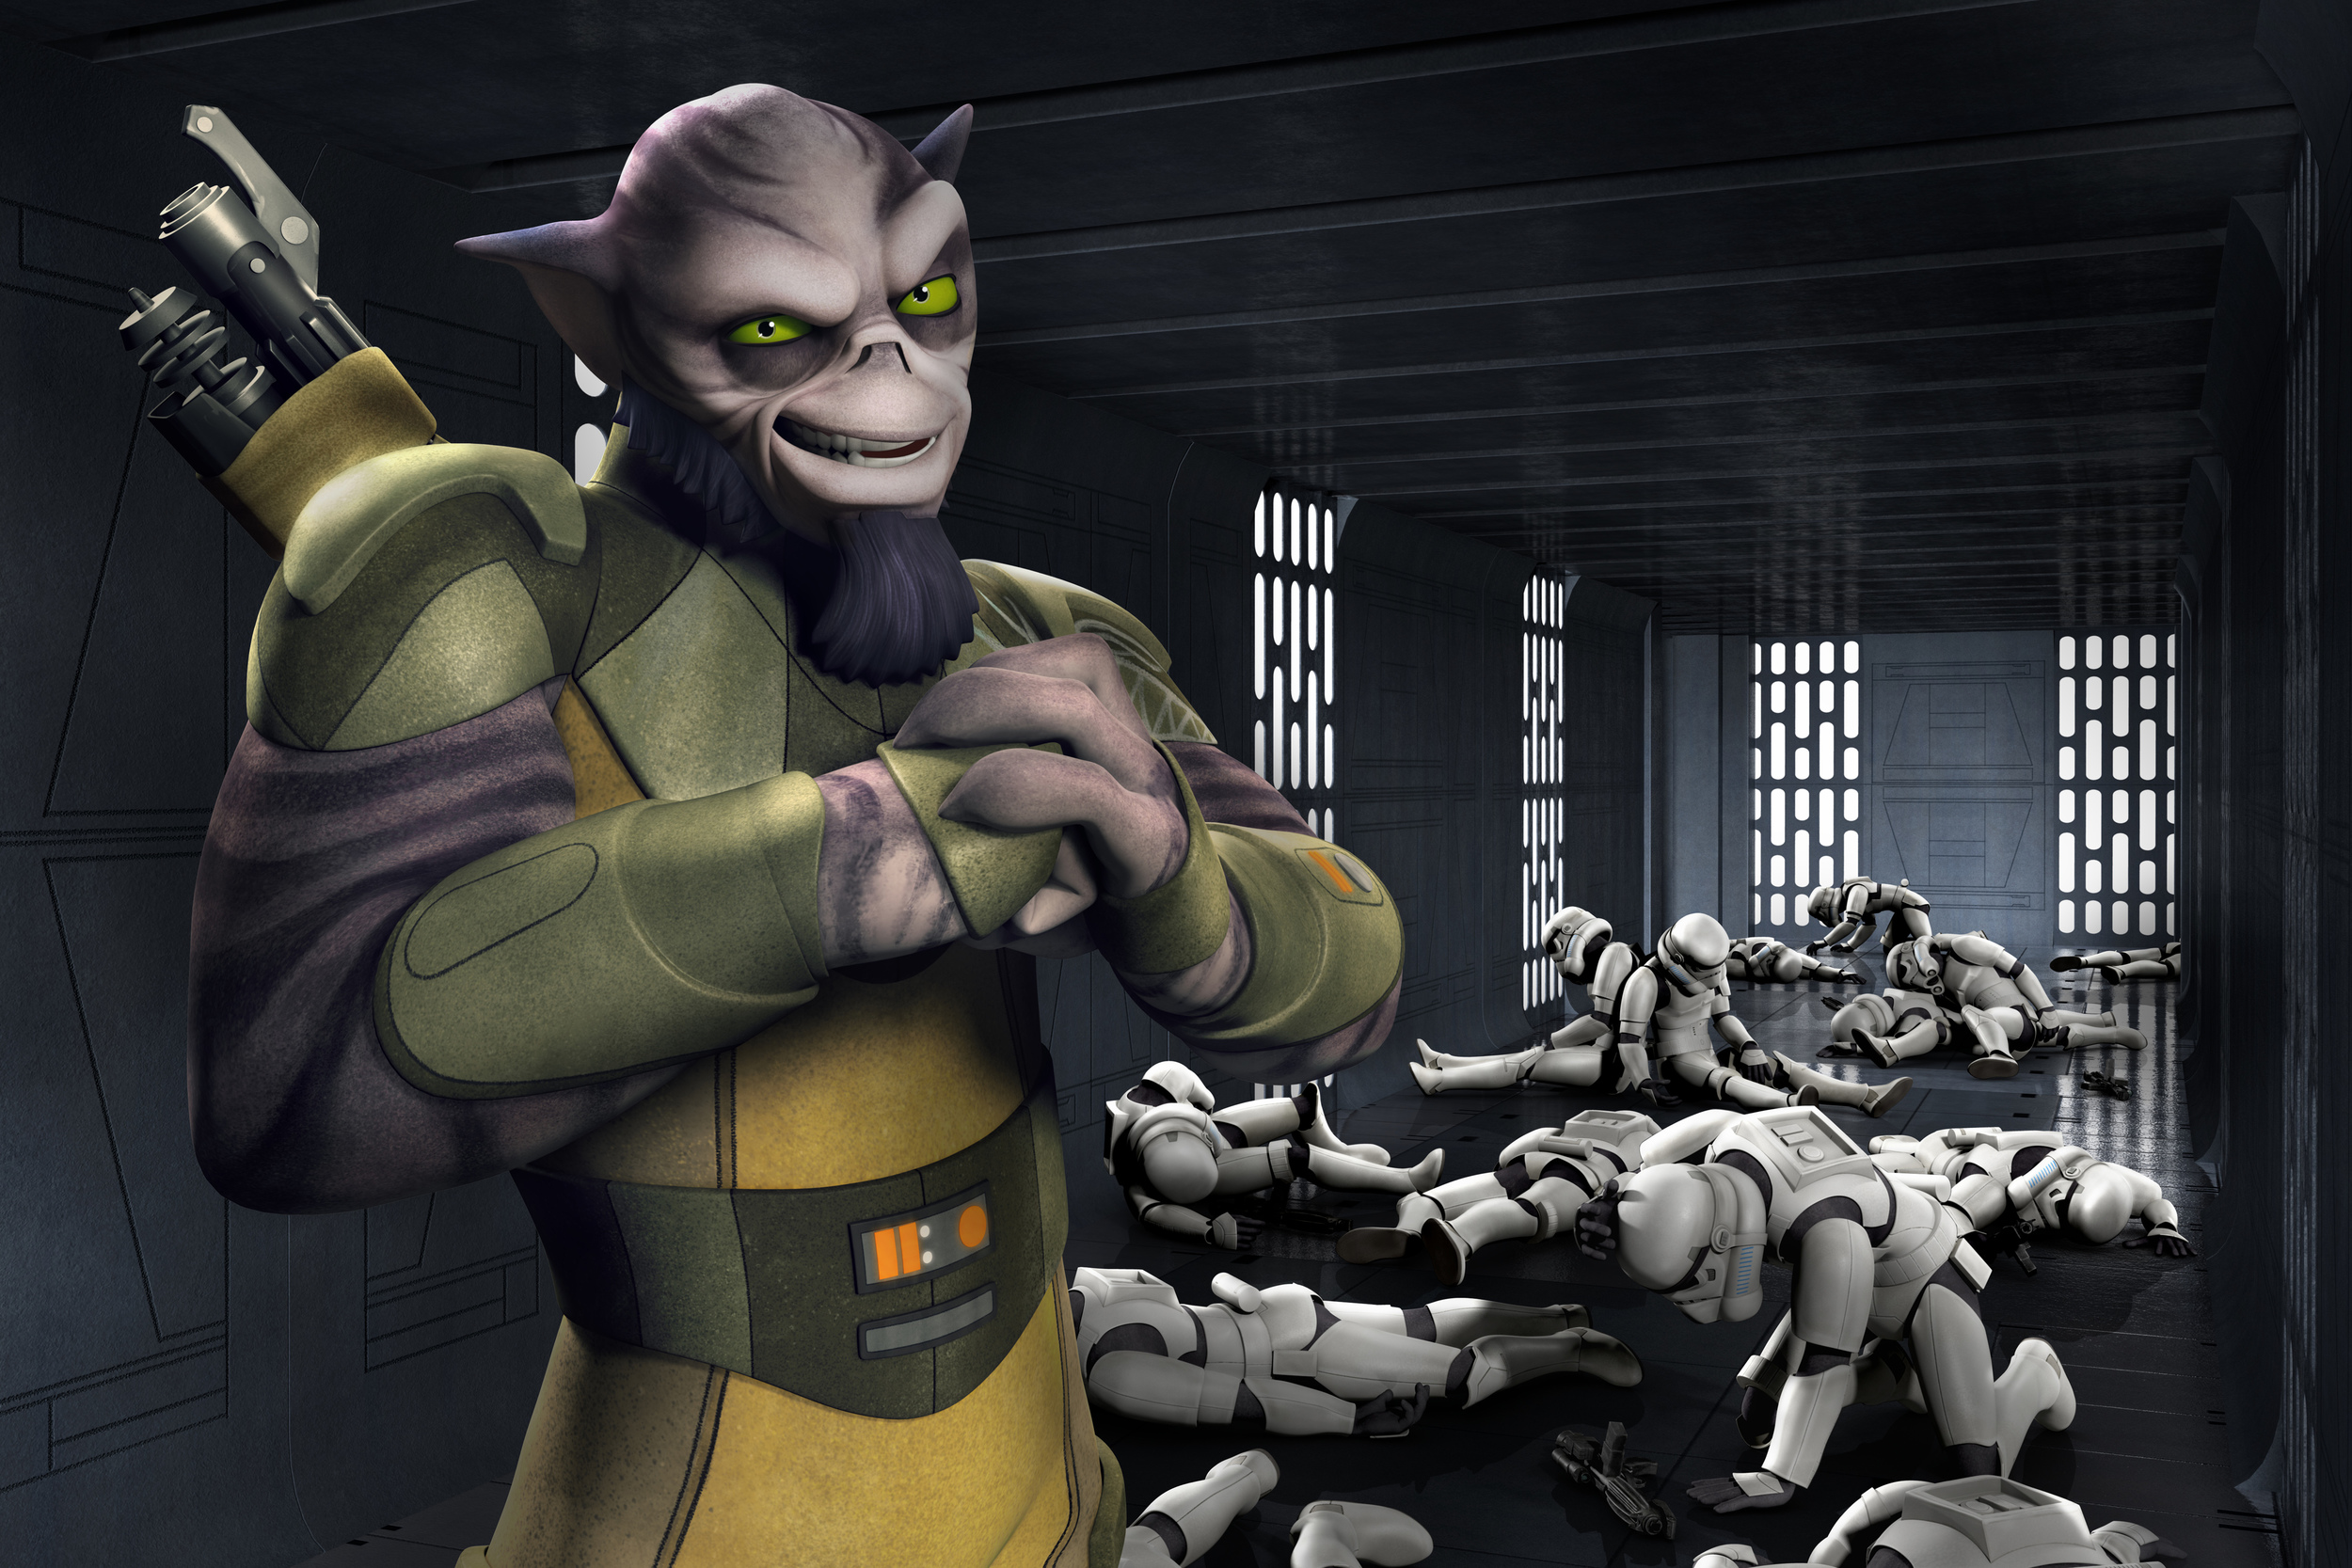 star-wars-rebels-zeb-1.jpg